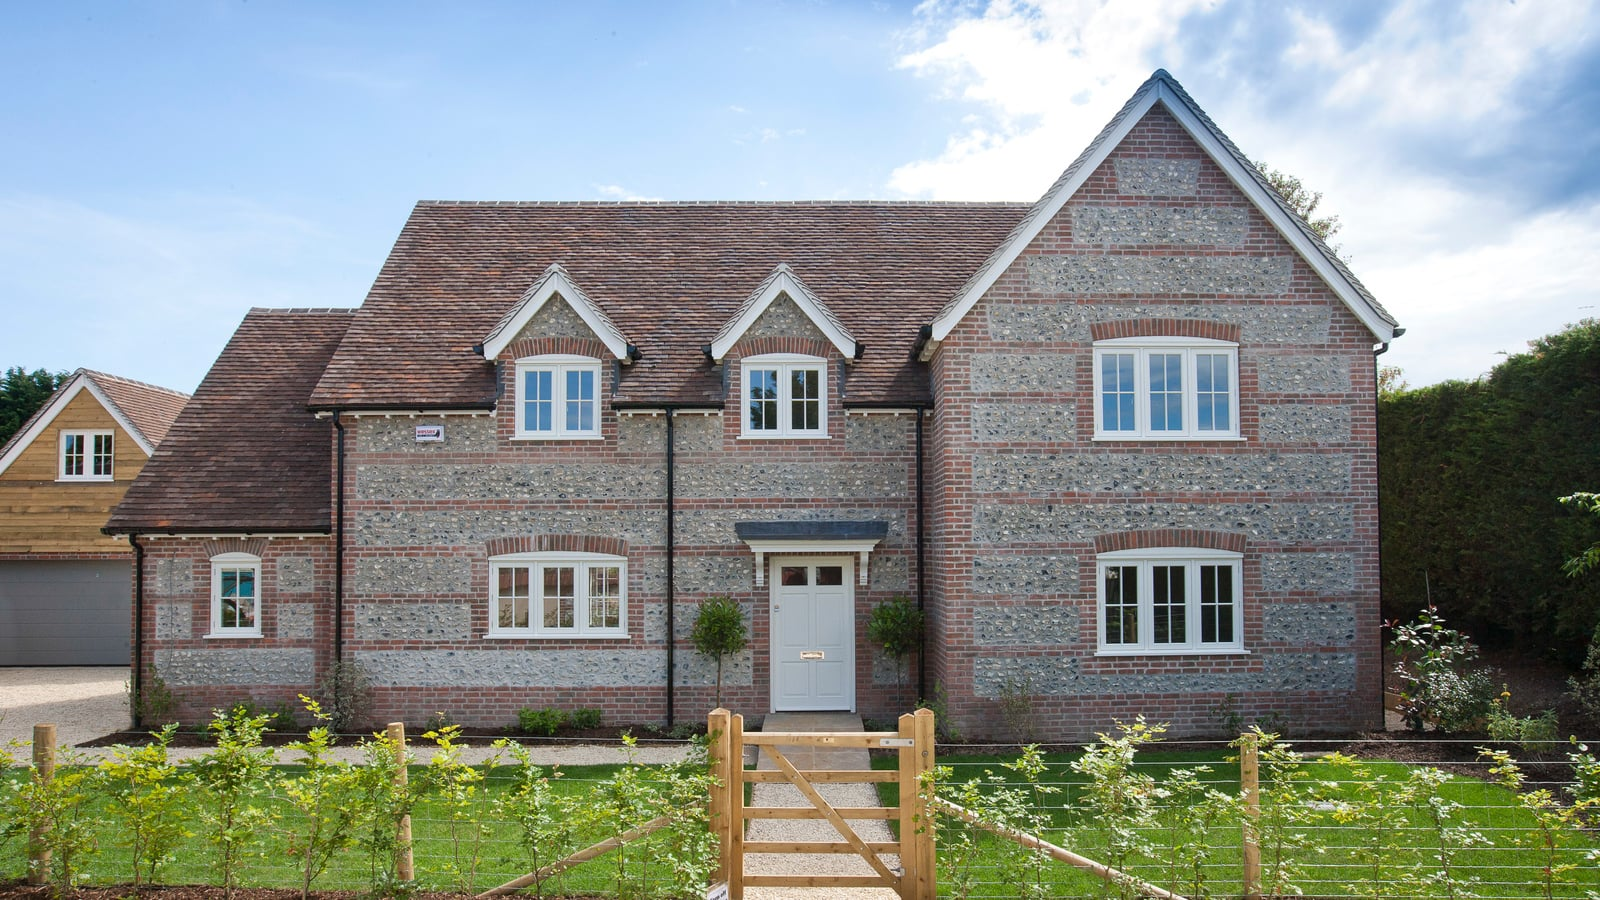 Cottage style new build property with casement windows and French Doors